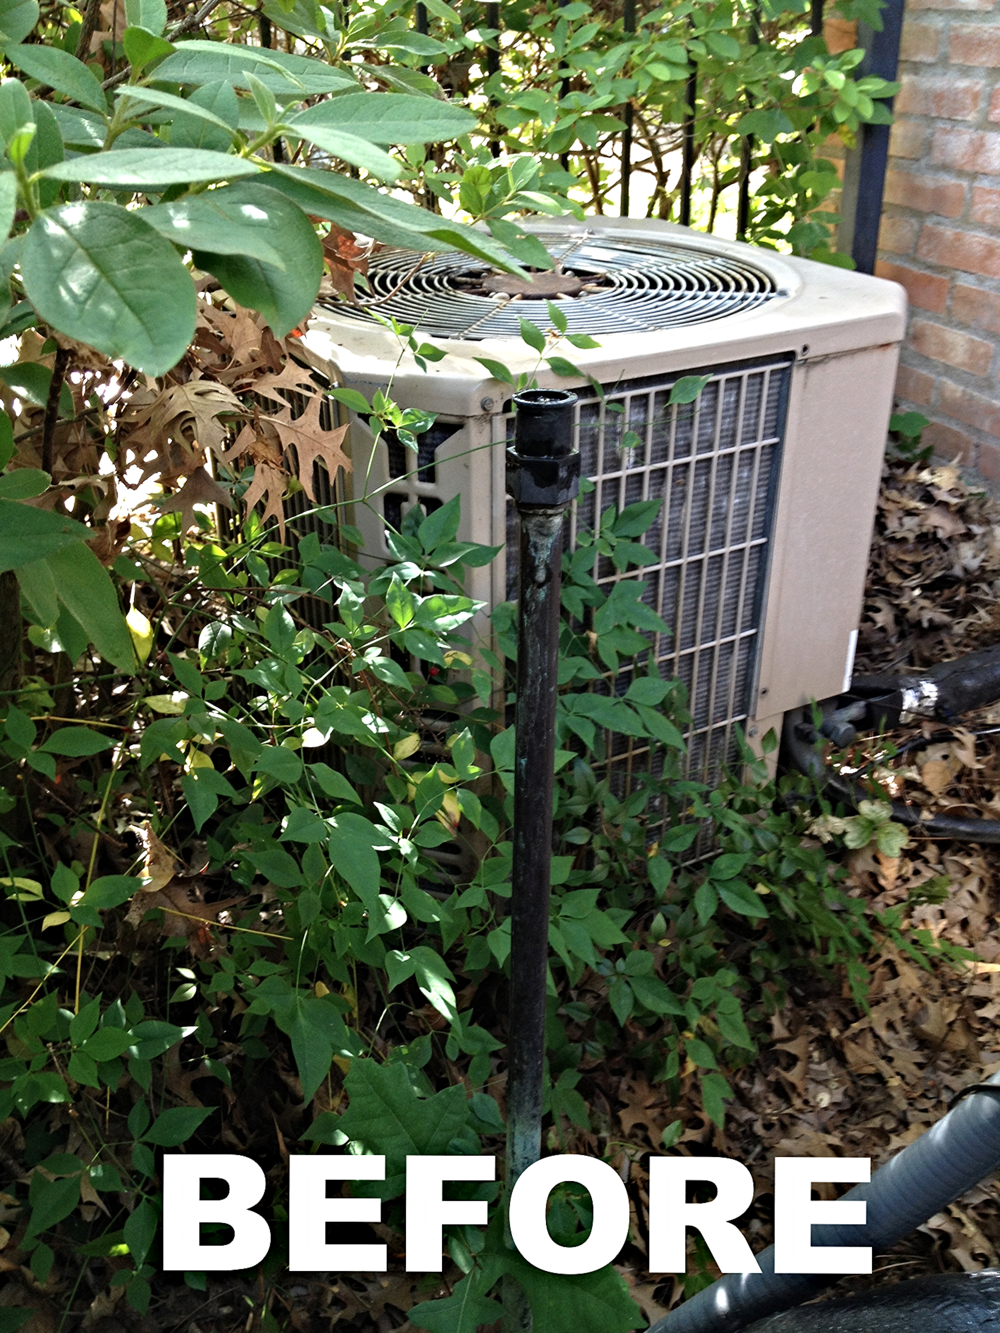 Old York AC Condenser - 1986